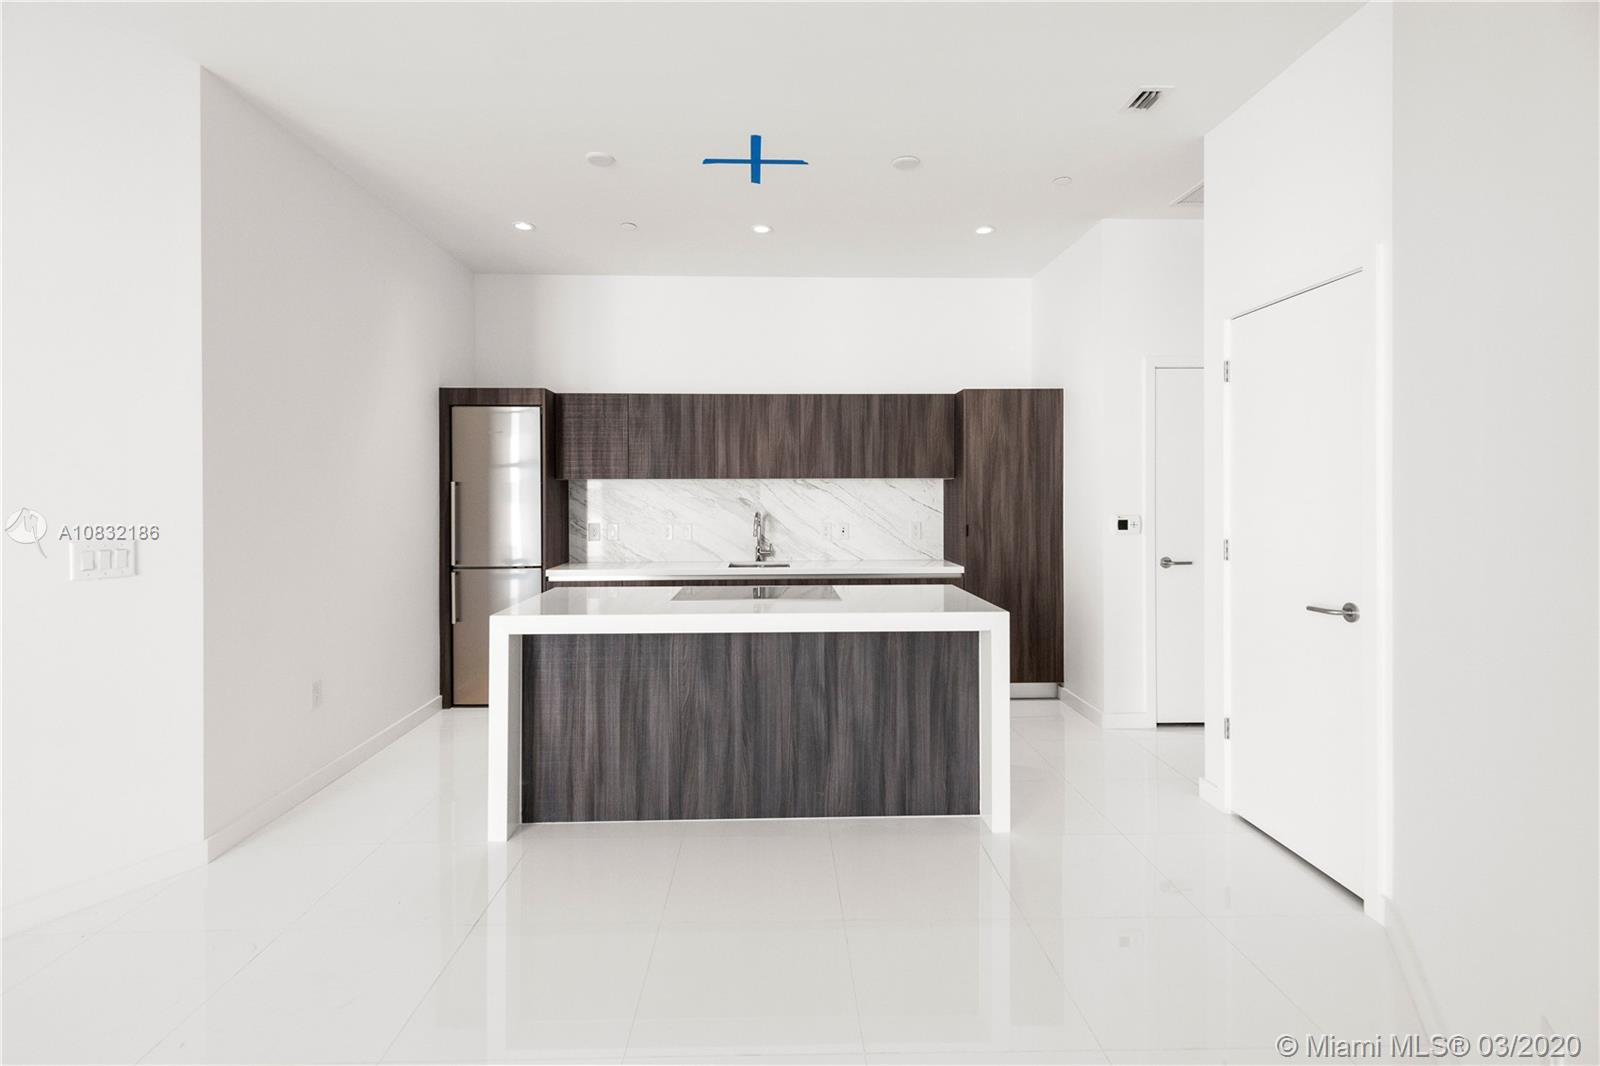 851 NE 1st Ave # 512, Miami, Florida 33132, 2 Bedrooms Bedrooms, ,2 BathroomsBathrooms,Residential,For Sale,851 NE 1st Ave # 512,A10832186